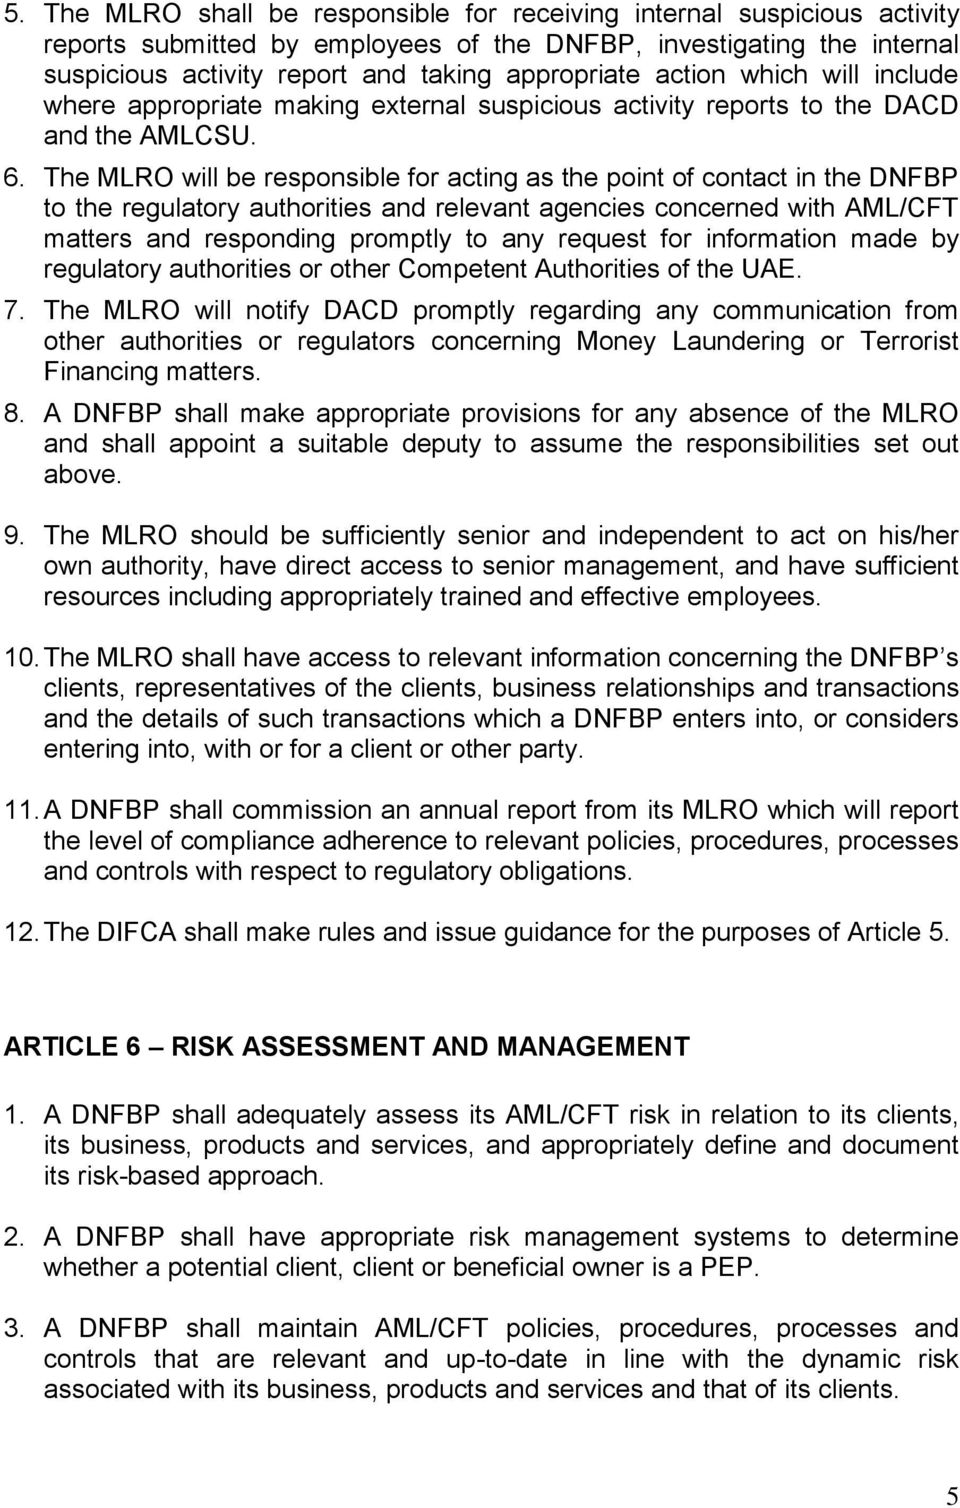 The MLRO will be responsible for acting as the point of contact in the DNFBP to the regulatory authorities and relevant agencies concerned with AML/CFT matters and responding promptly to any request